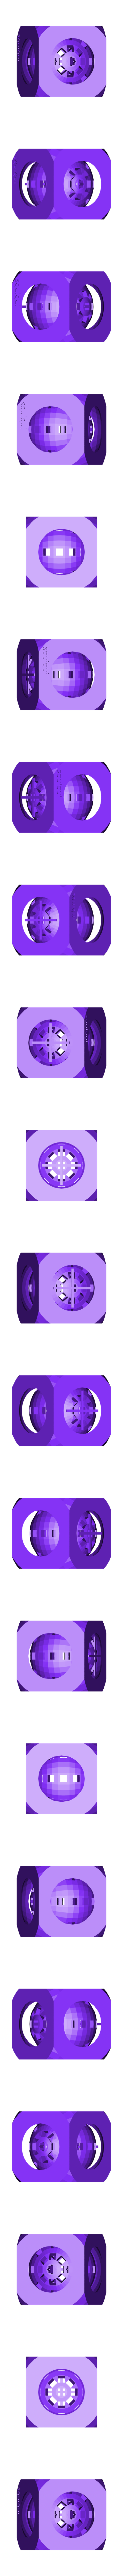 Ball_in_Cube_round_edges.stl Download free STL file Present: movable ball in a cube made with tinkercad with tutorial • 3D printable model, squiqui